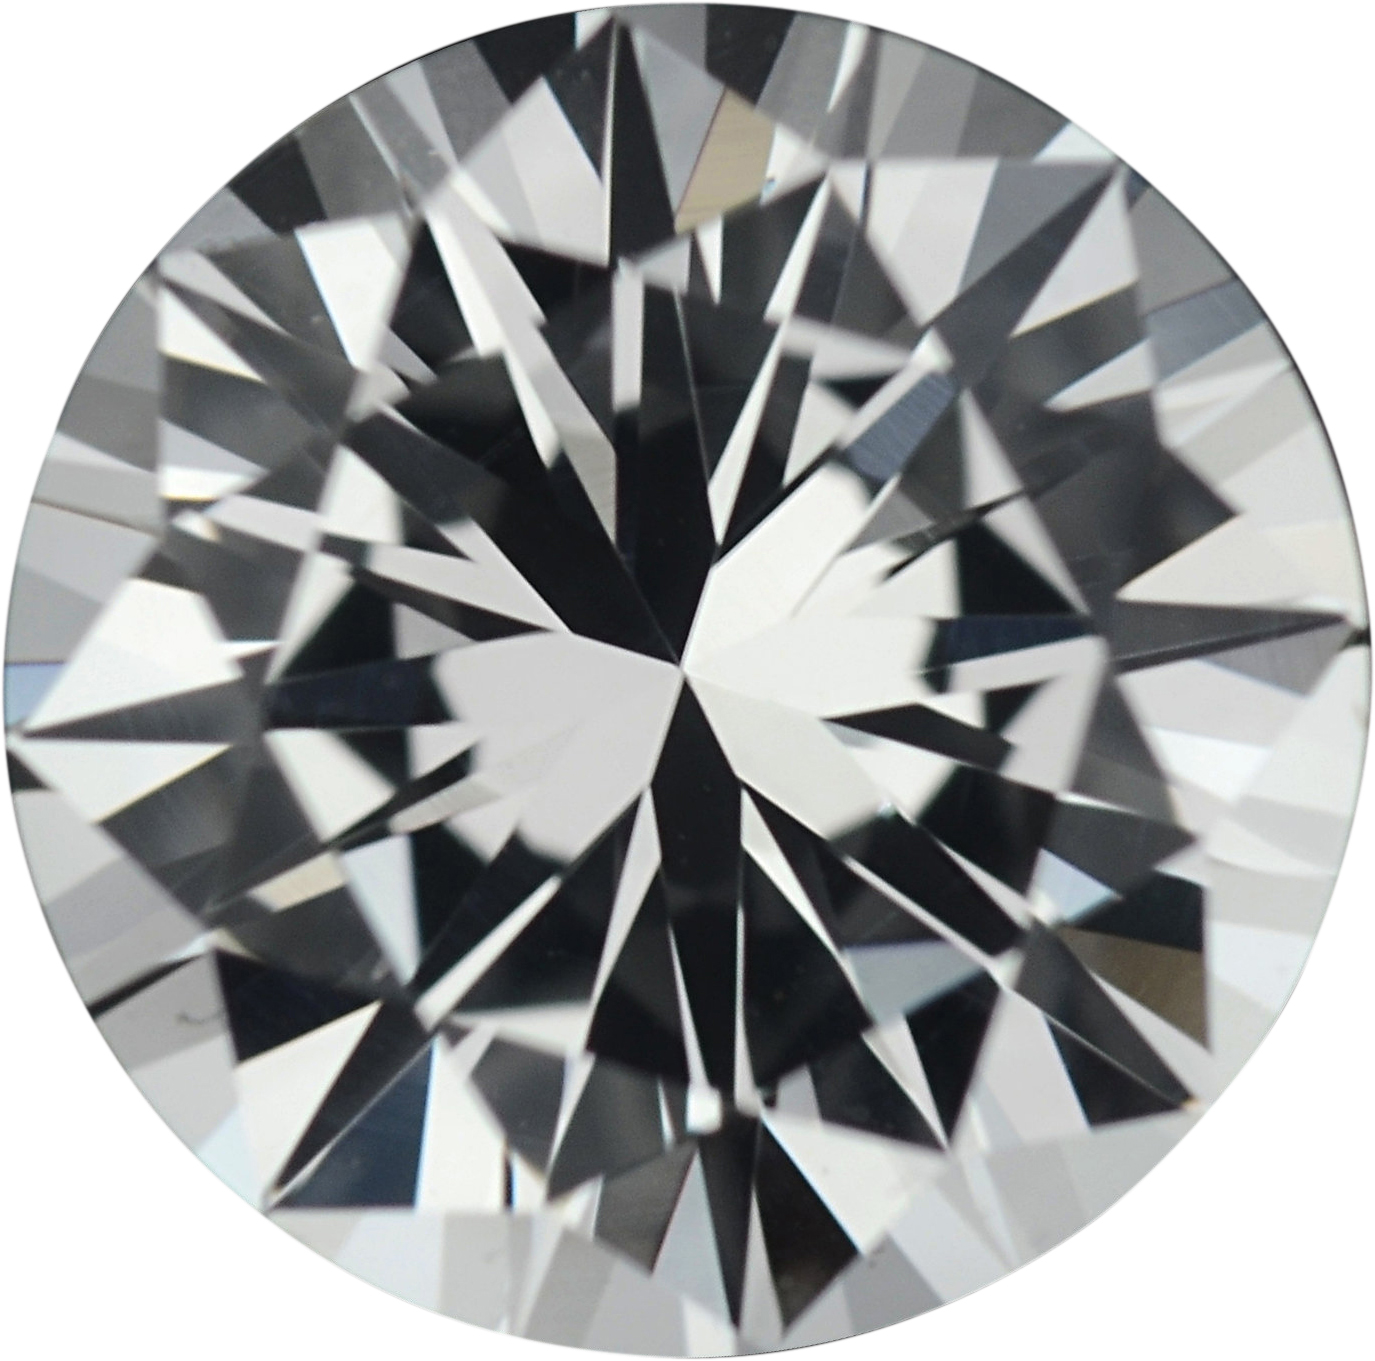 1.48 carats White Loose Sapphire Gemstone in Round Cut, 7 mm